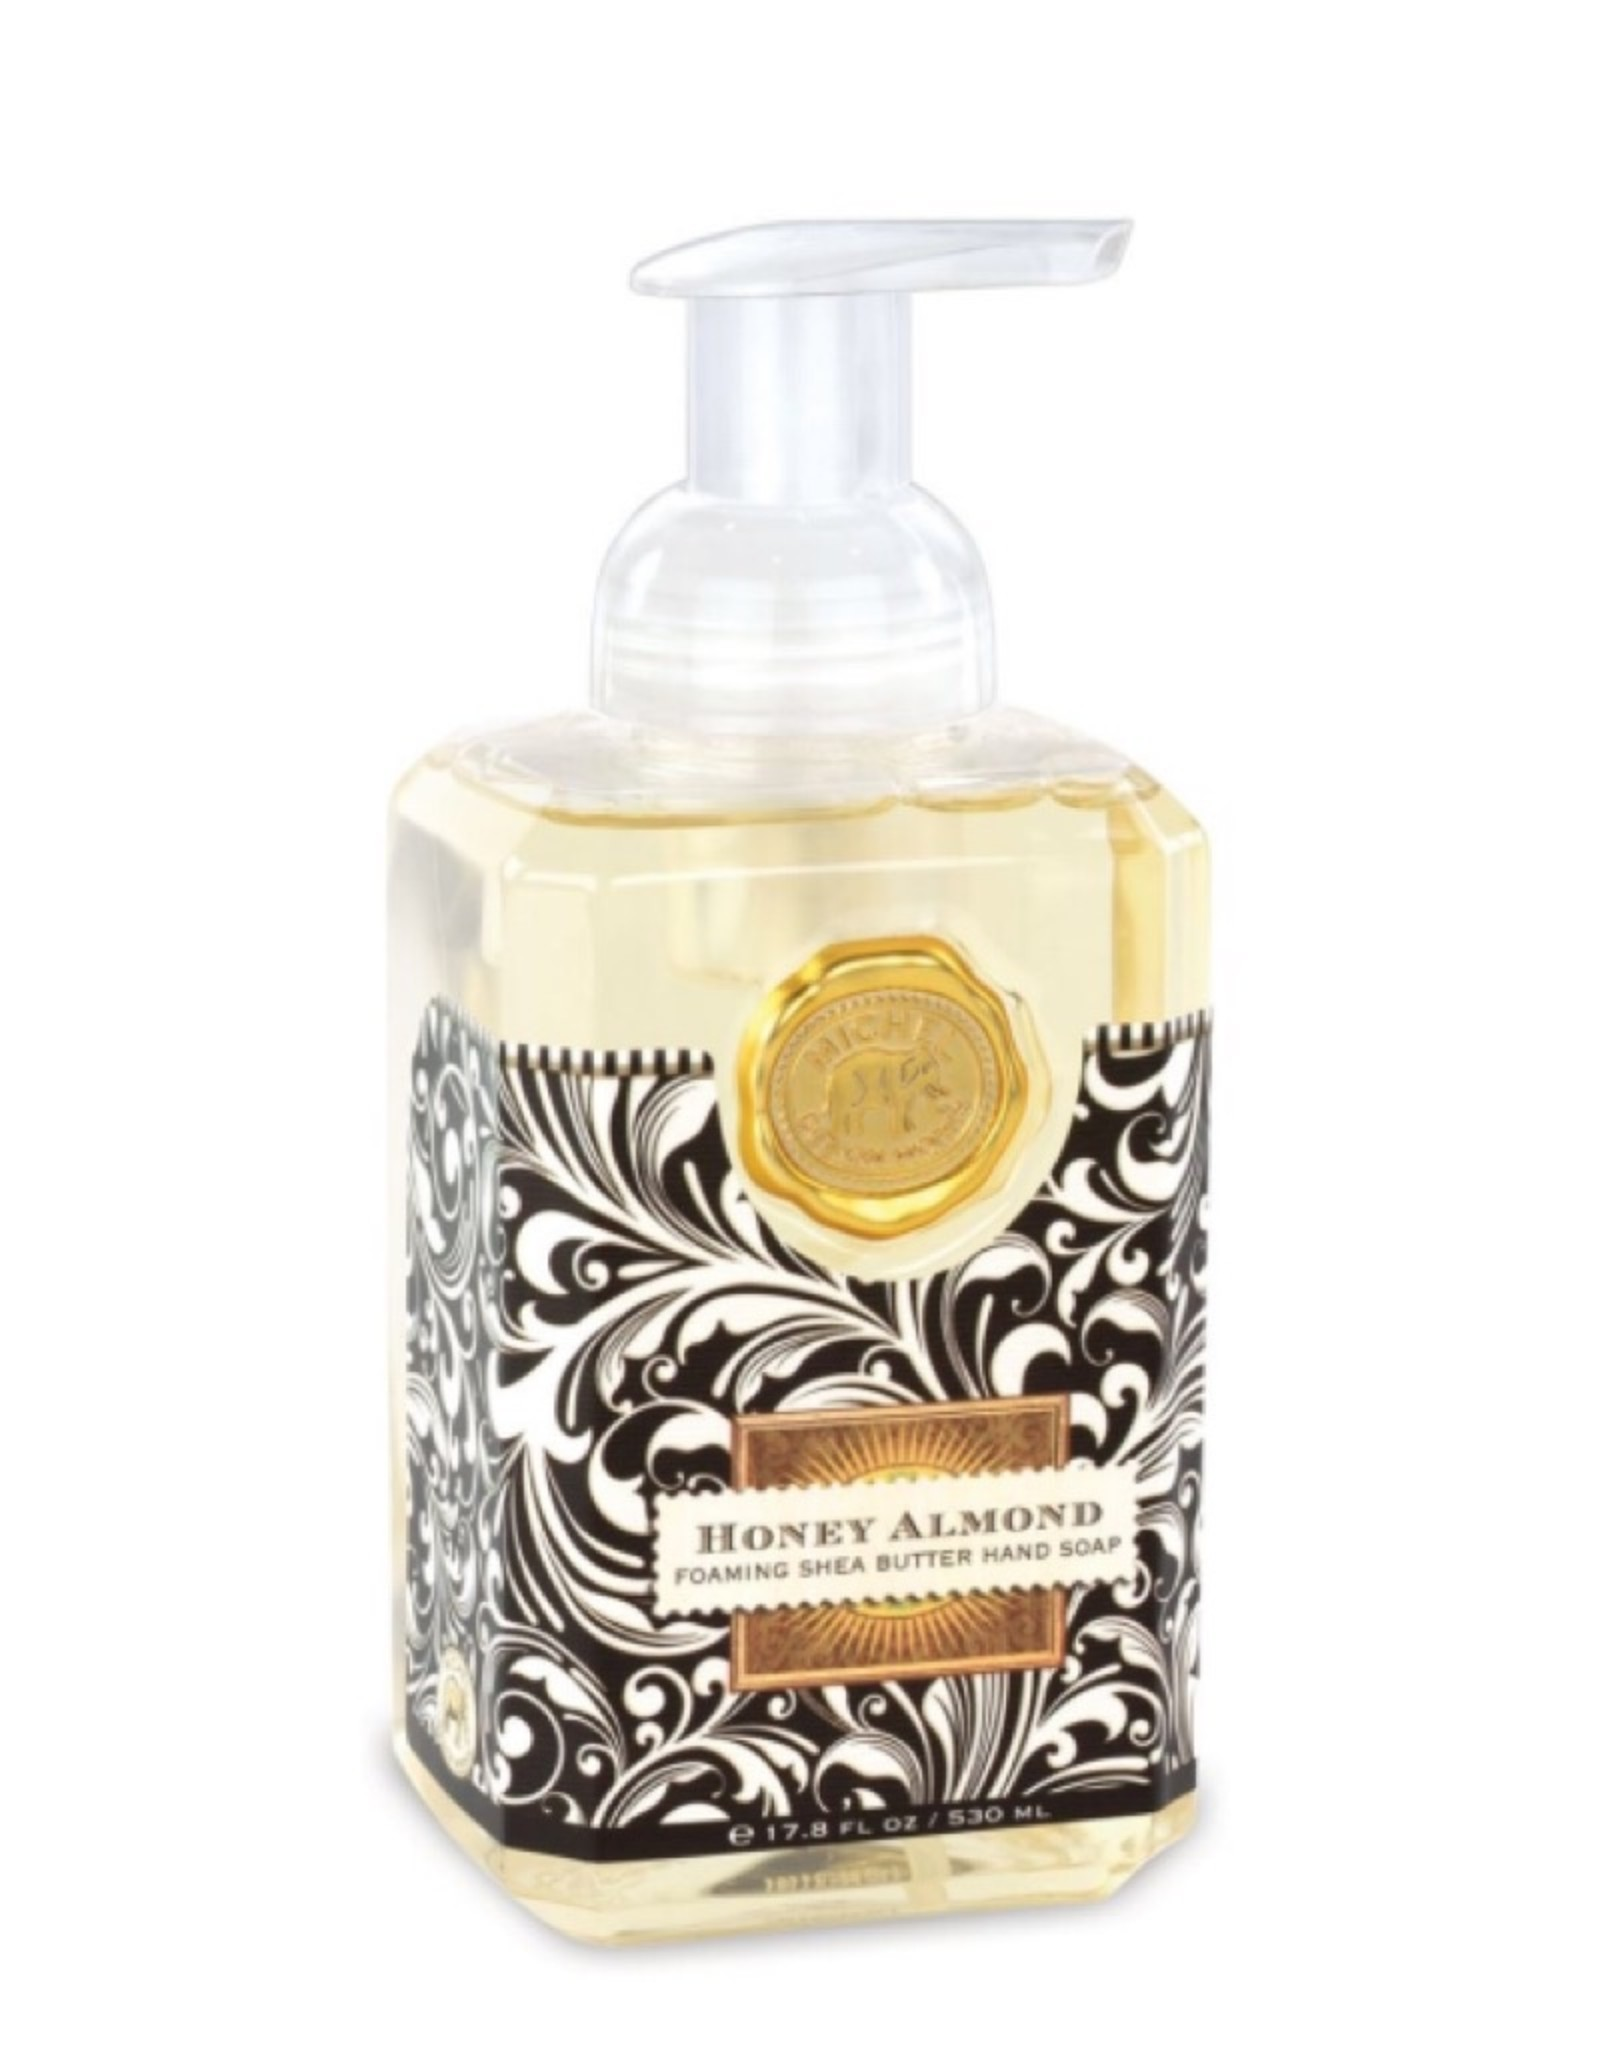 FOA182 Honey Almond Foaming Soap